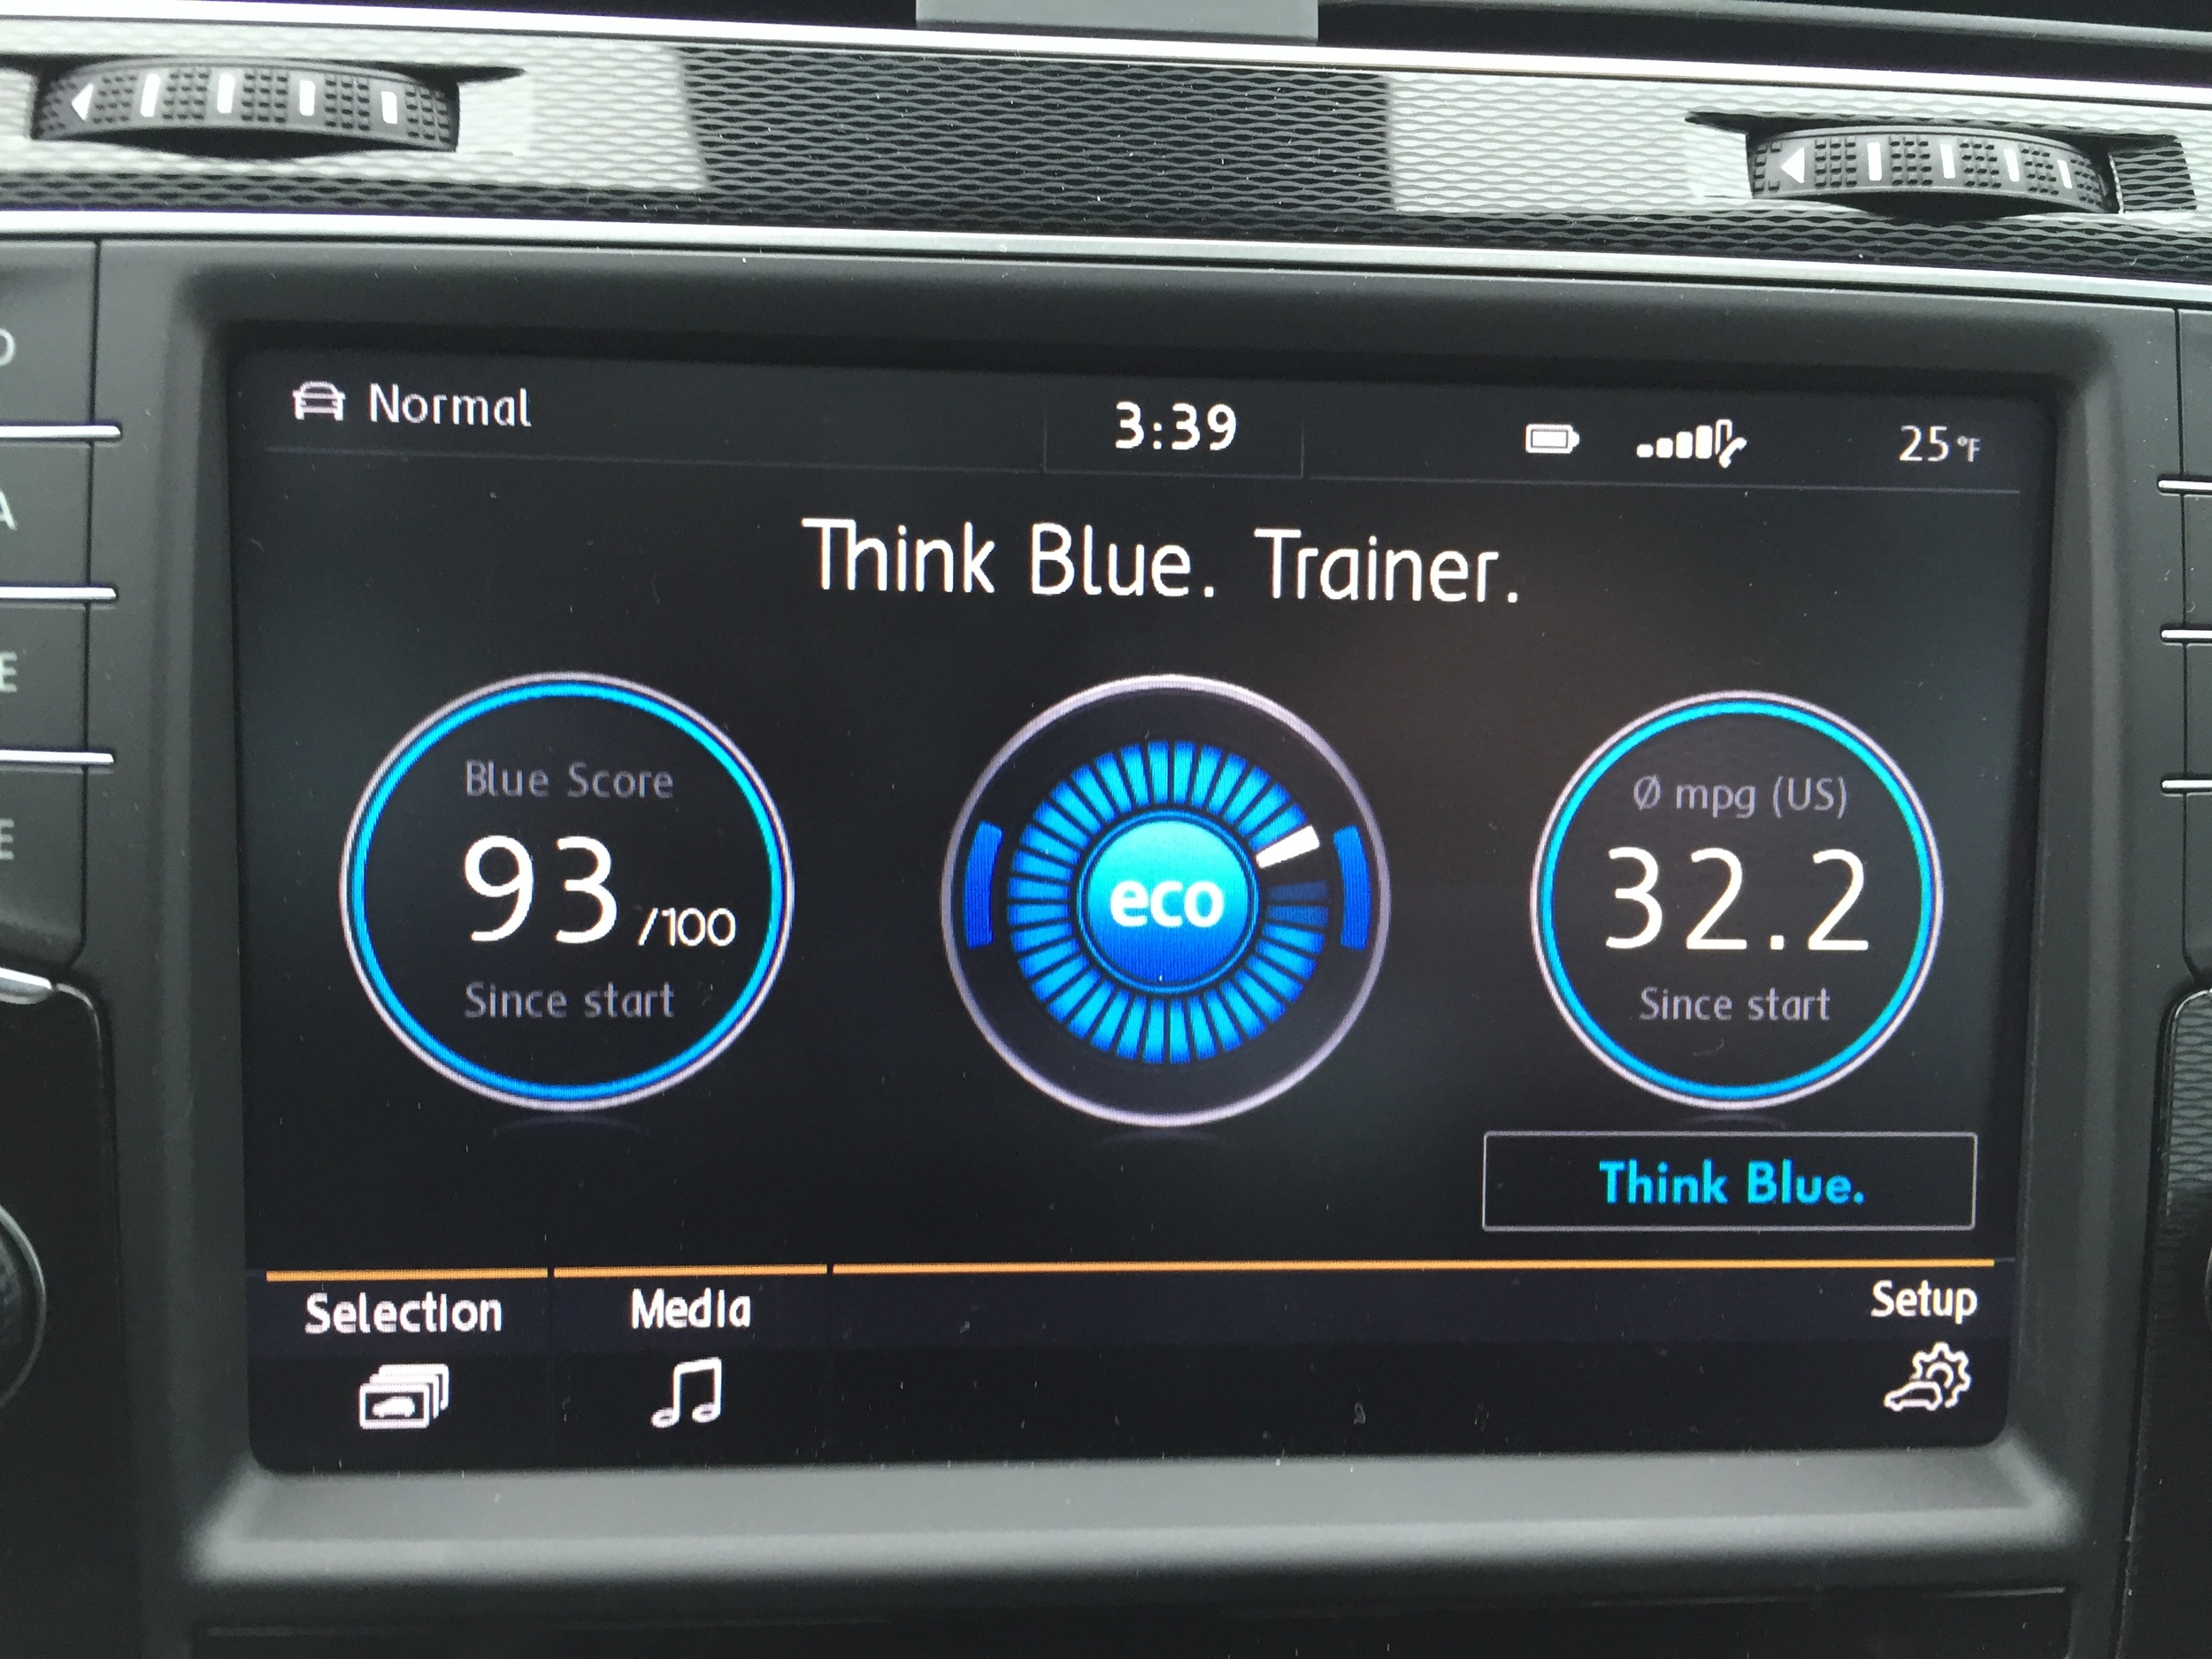 The Think Blue. Trainer gamifies and rewards efficient driving. Though the score is ultimately meaningless, my pathological need for achievement has kept my right foot lighter than usual.